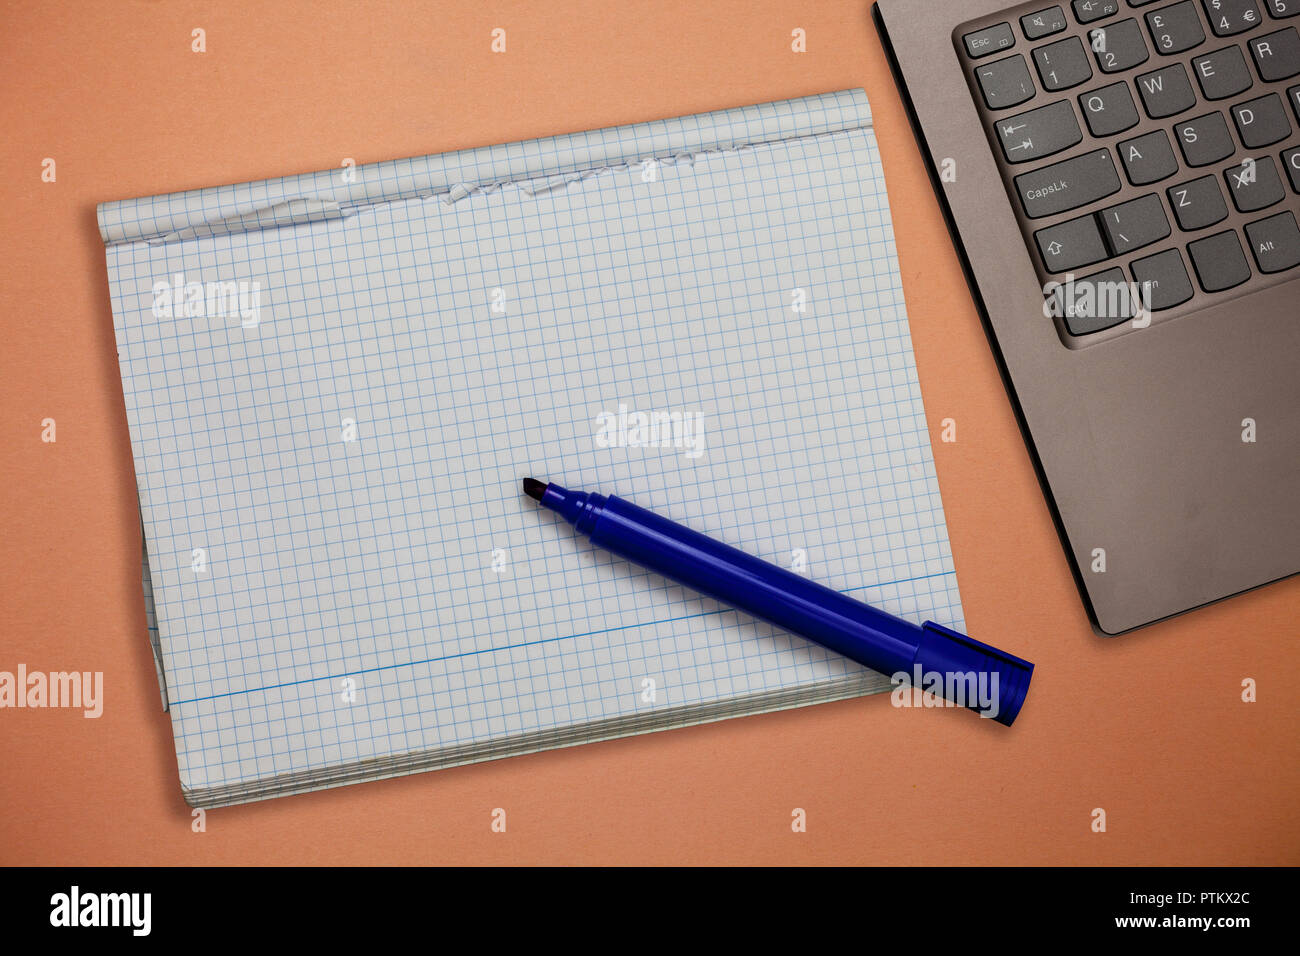 Graphing Stock Photos & Graphing Stock Images - Alamy